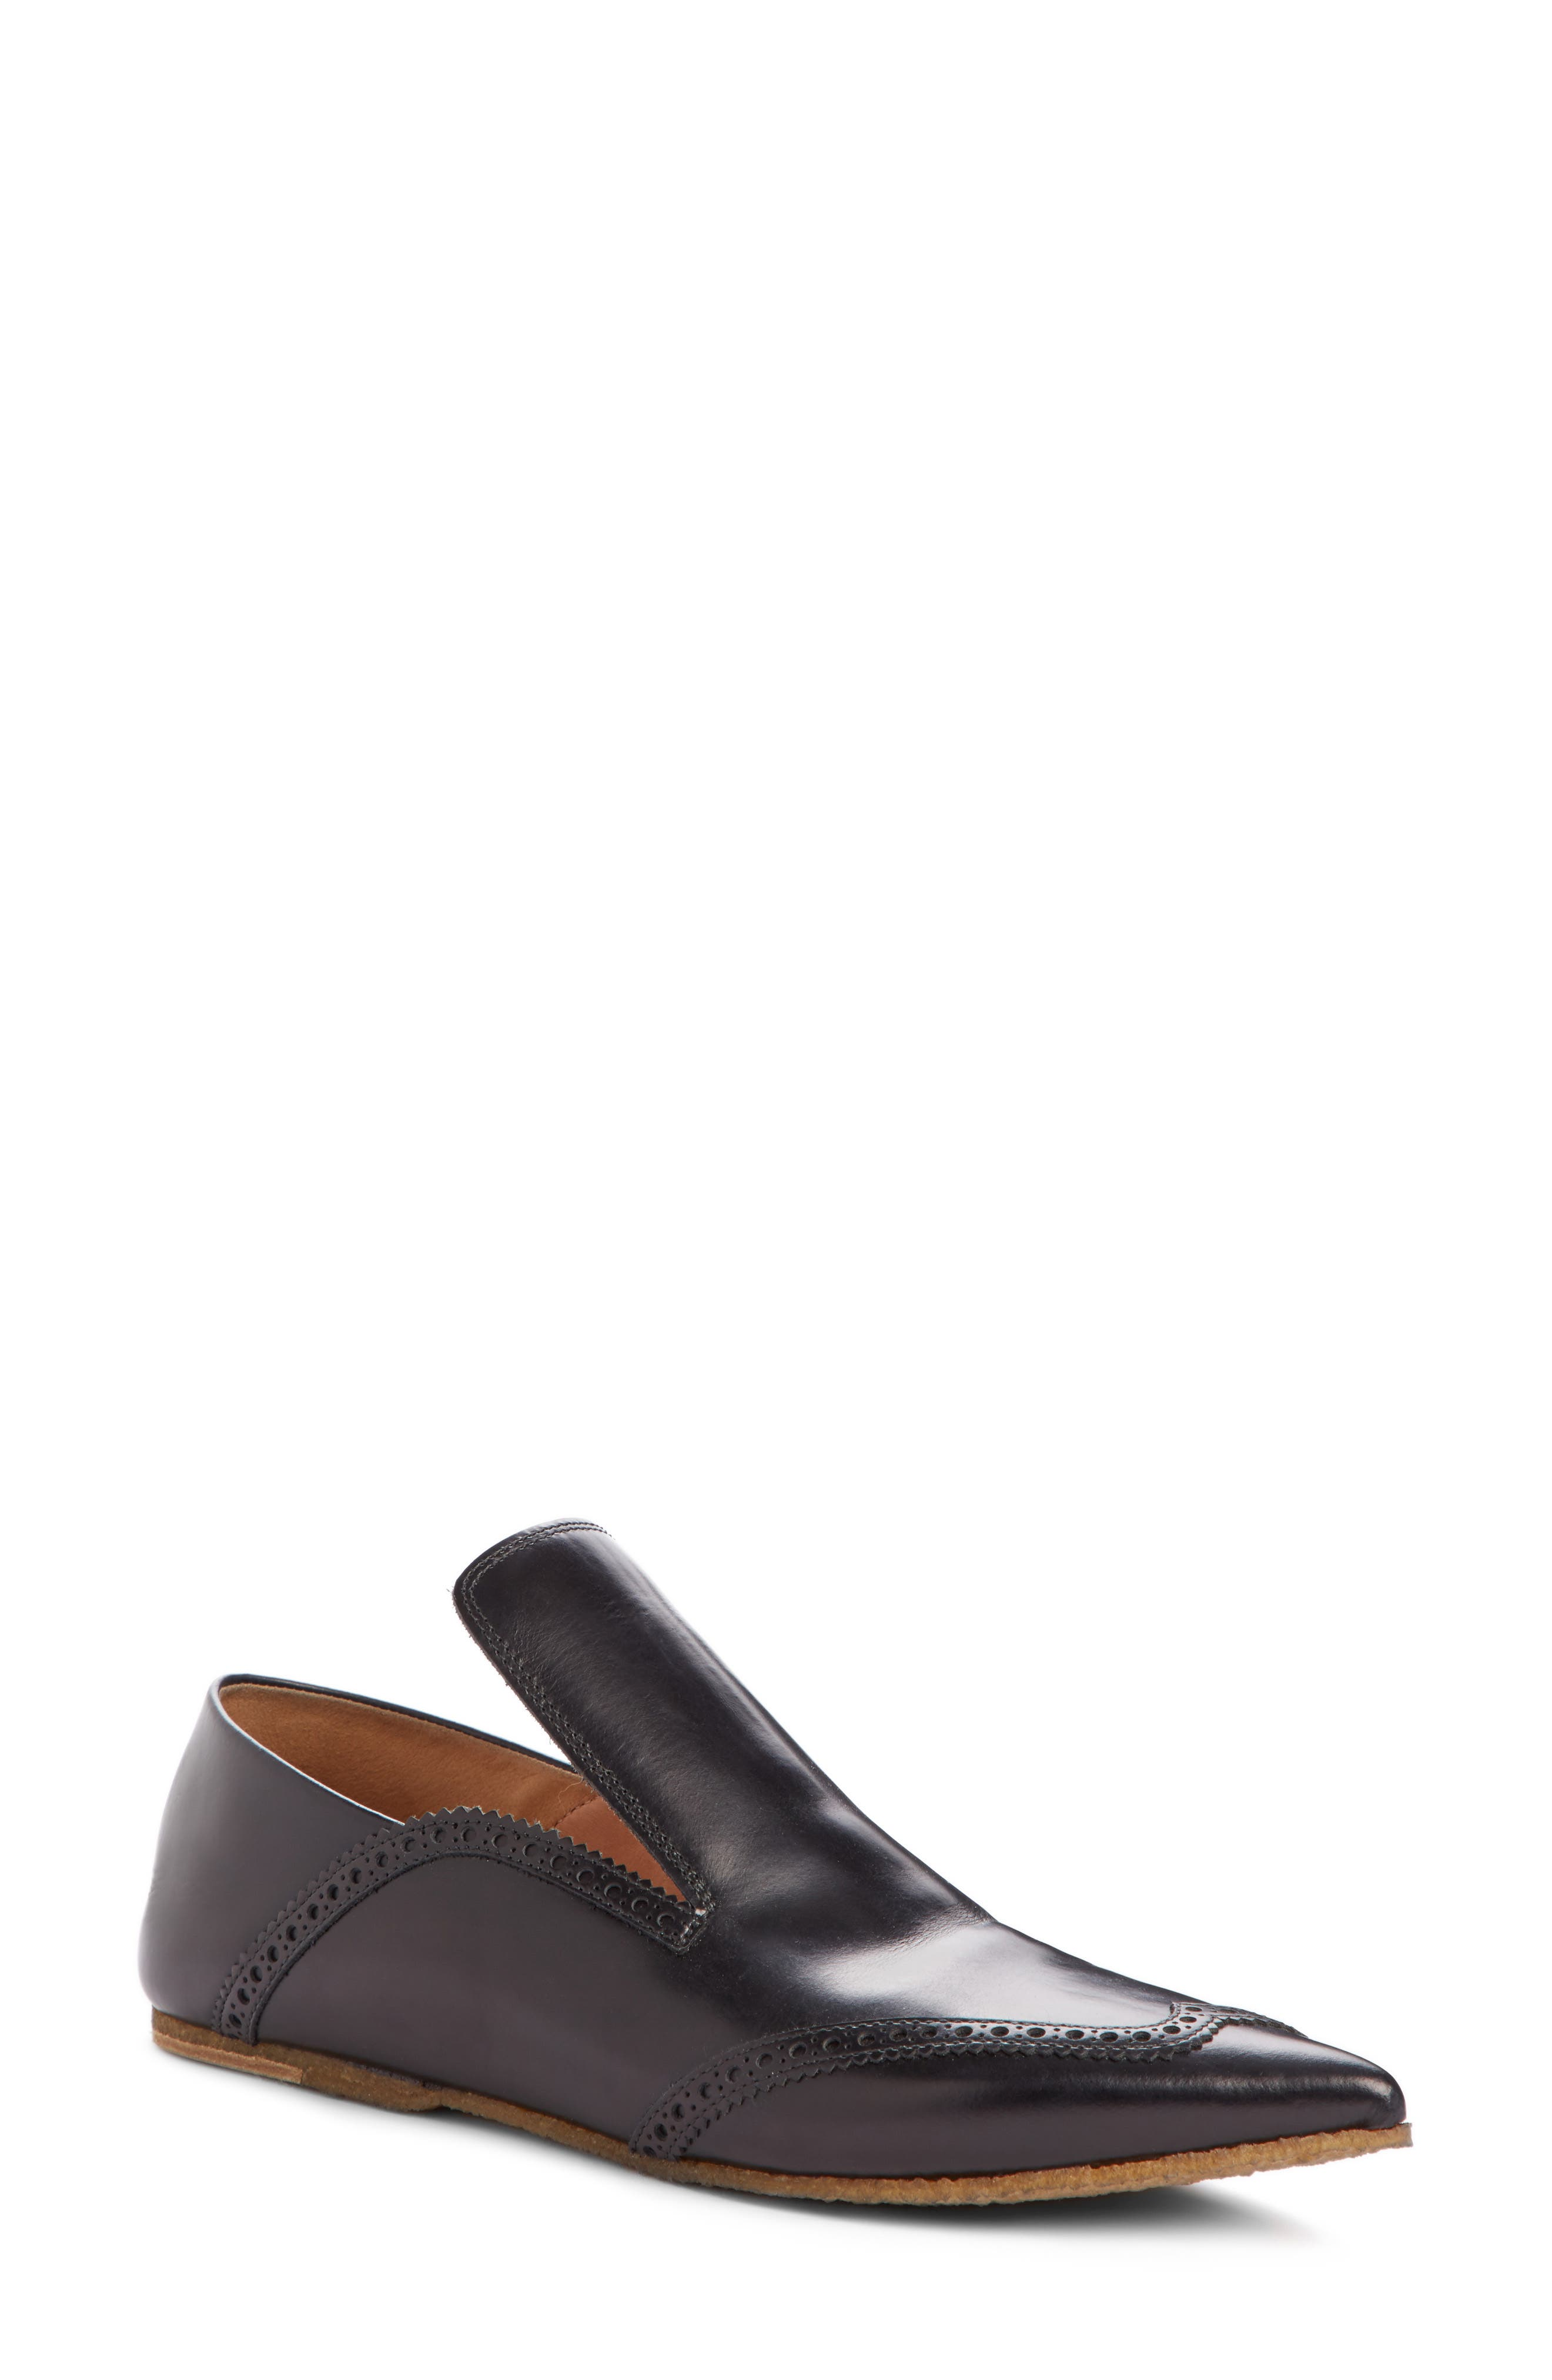 Pointy Toe Loafer,                             Main thumbnail 1, color,                             Black